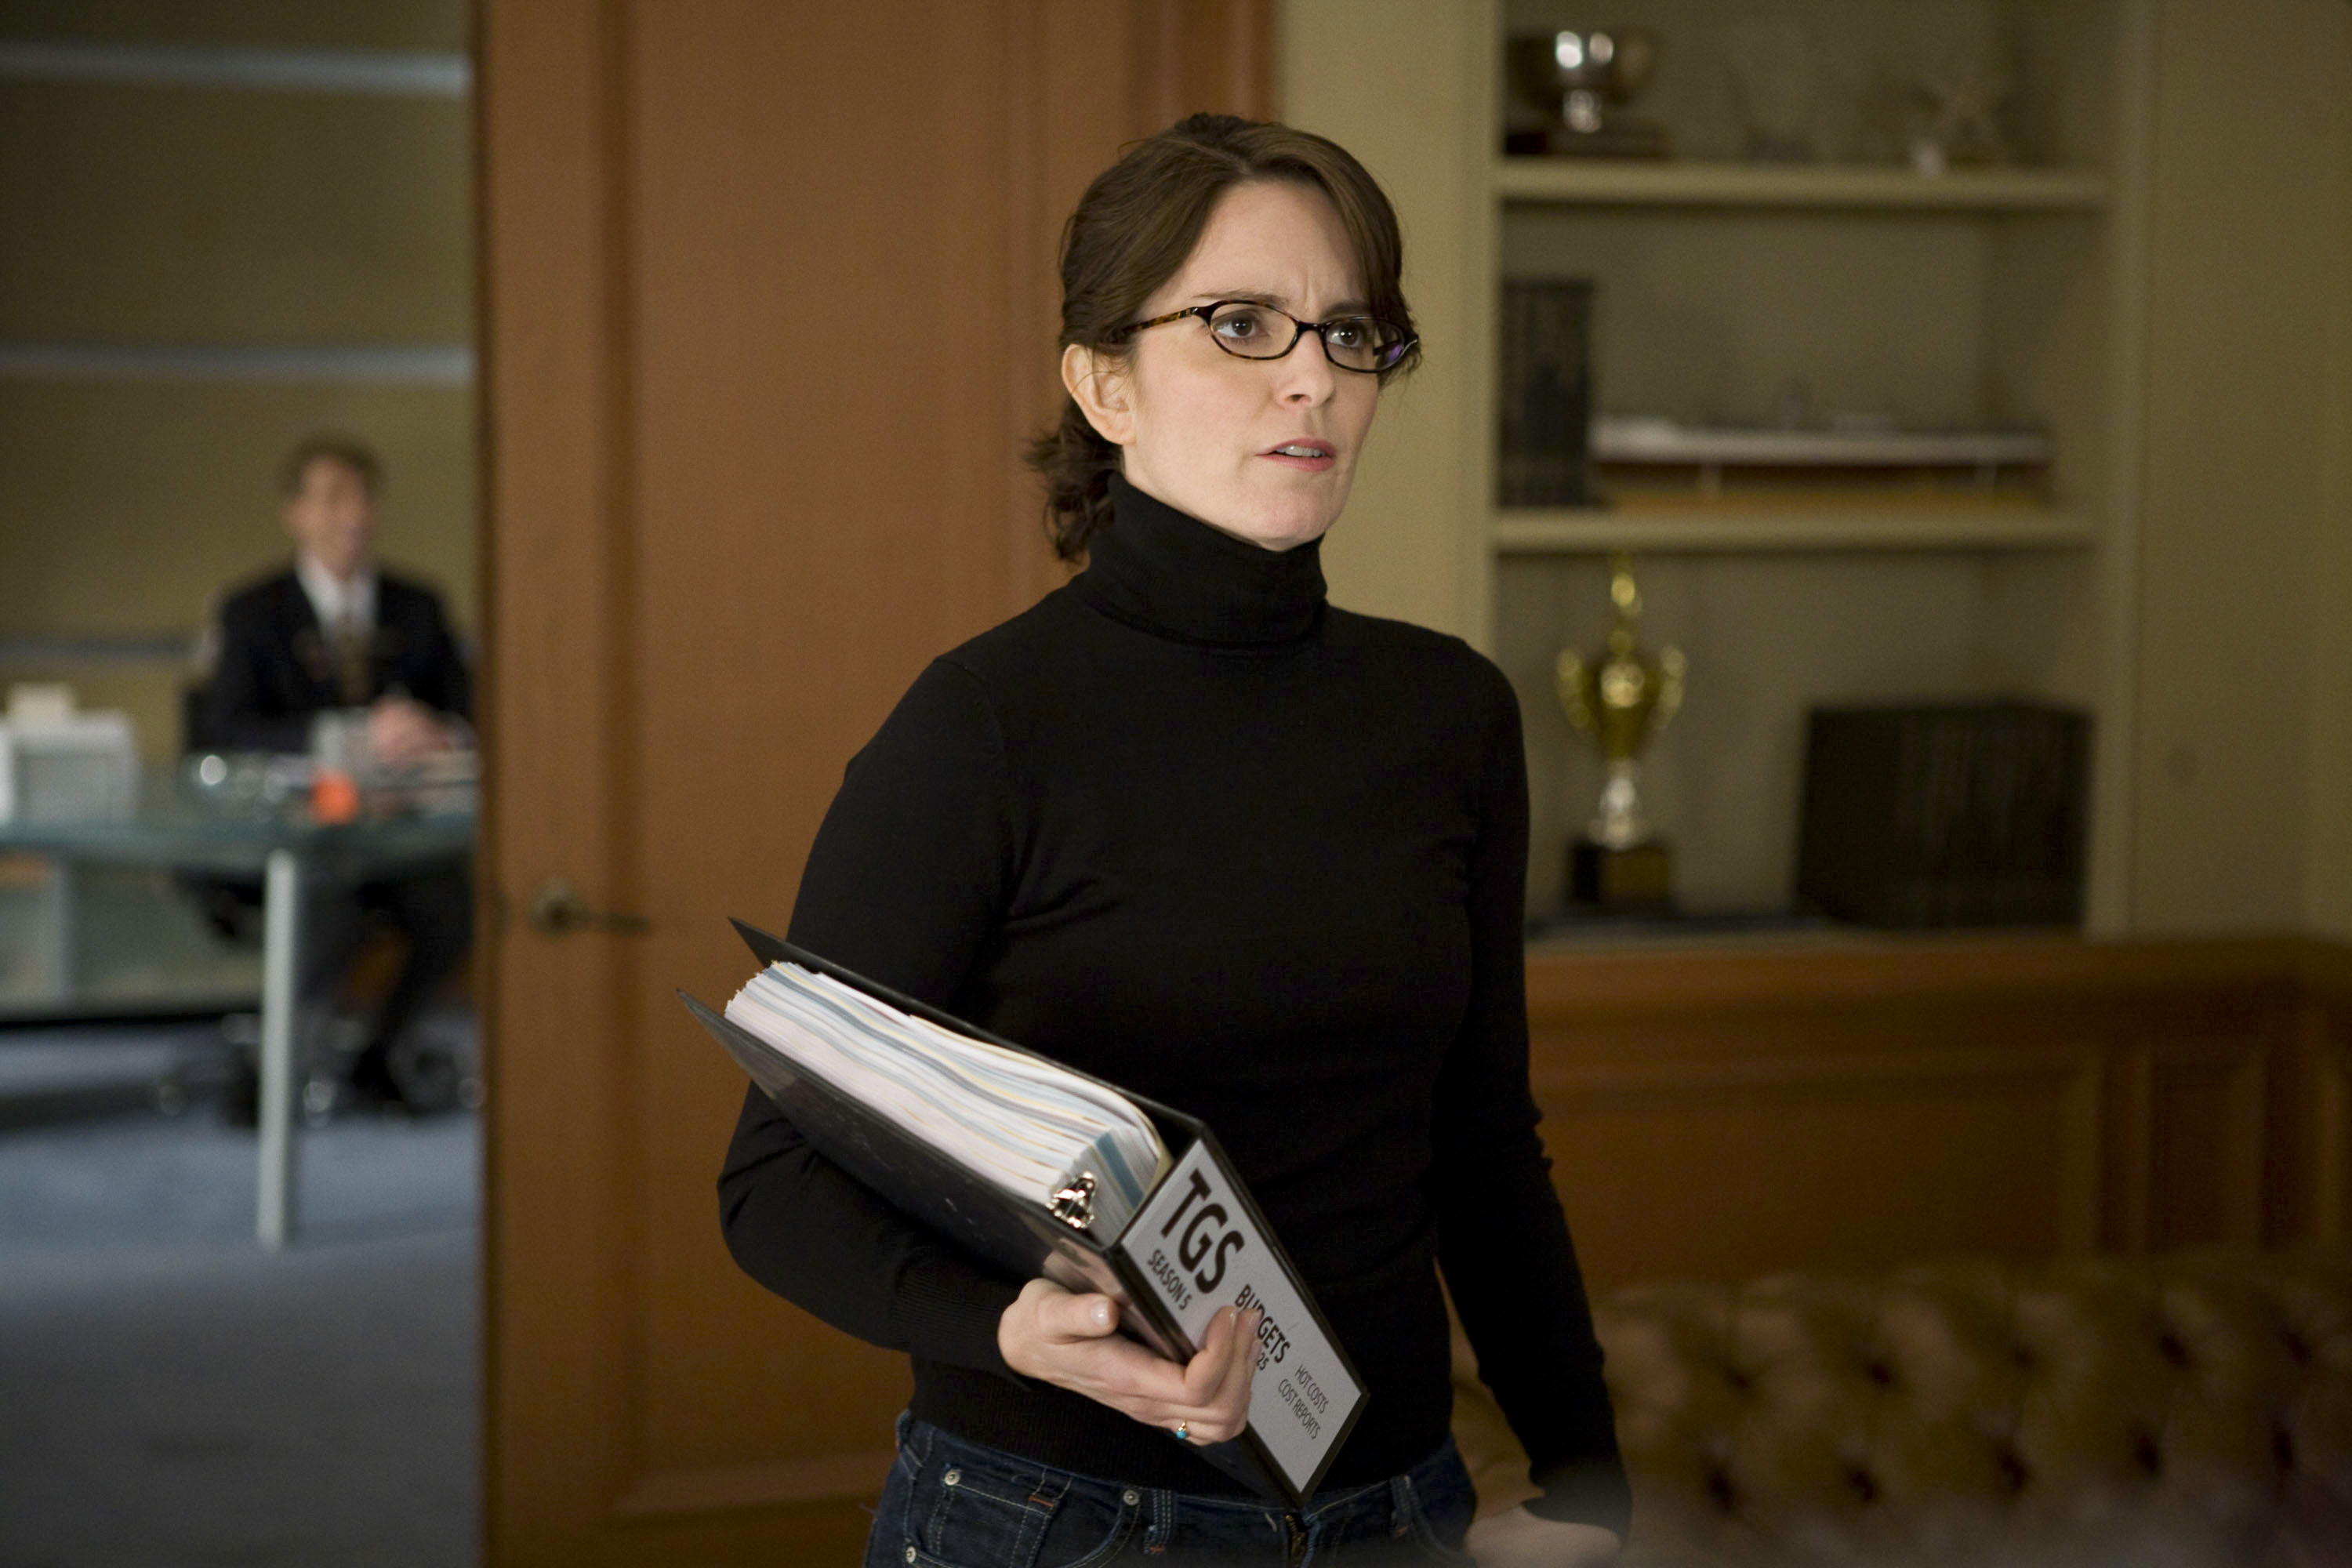 The cast for Tina Fey's new NBC show is the greatest television cast ever assembled